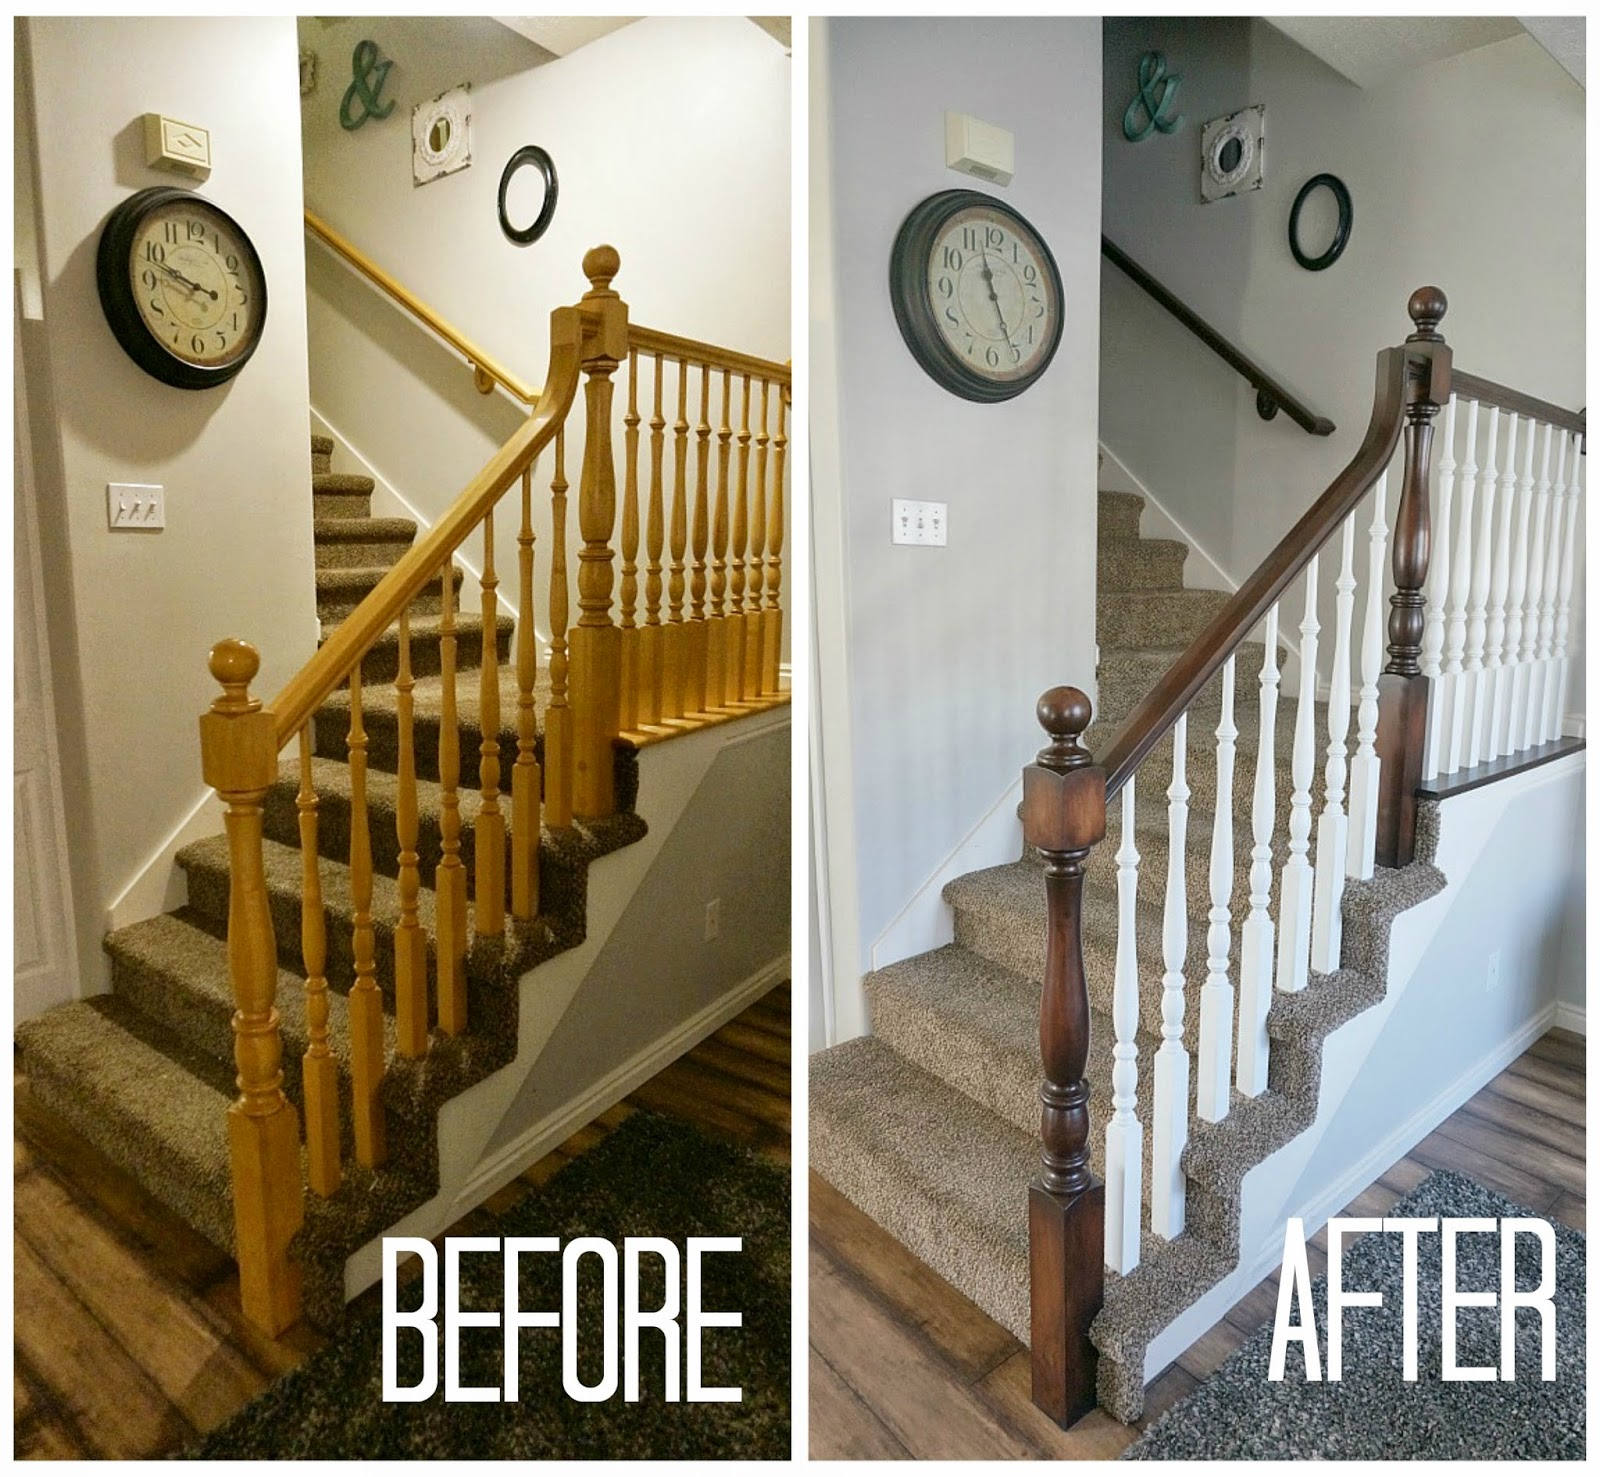 Refinishing Oak Stair Railings! Attention WORLD!